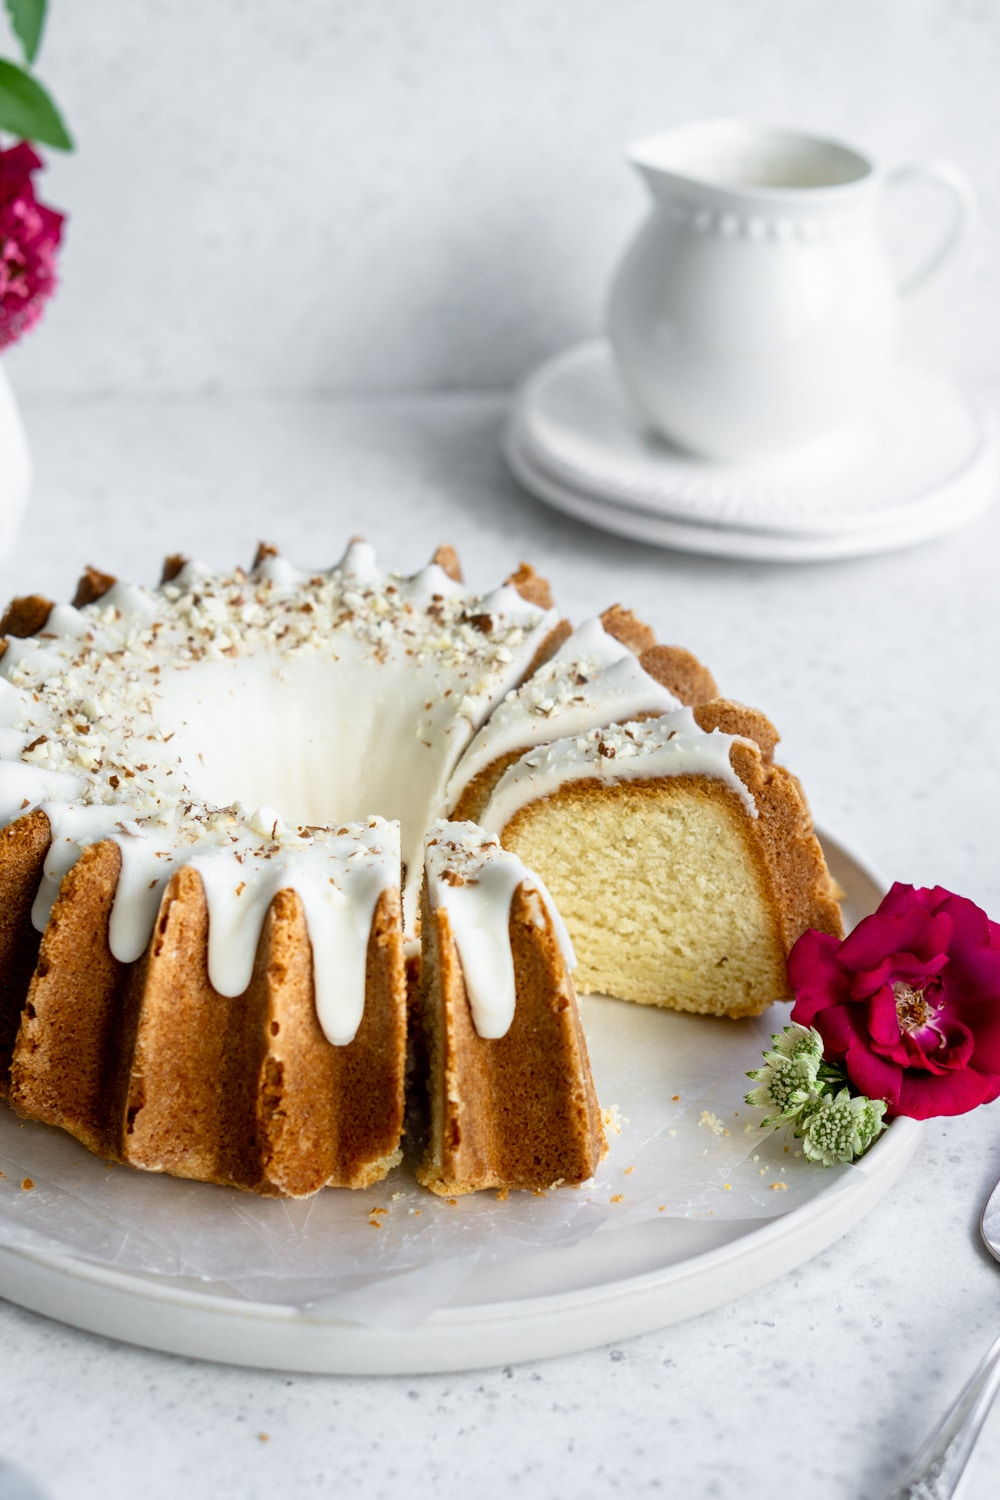 almond bundt cake on a plate with a slice taken out